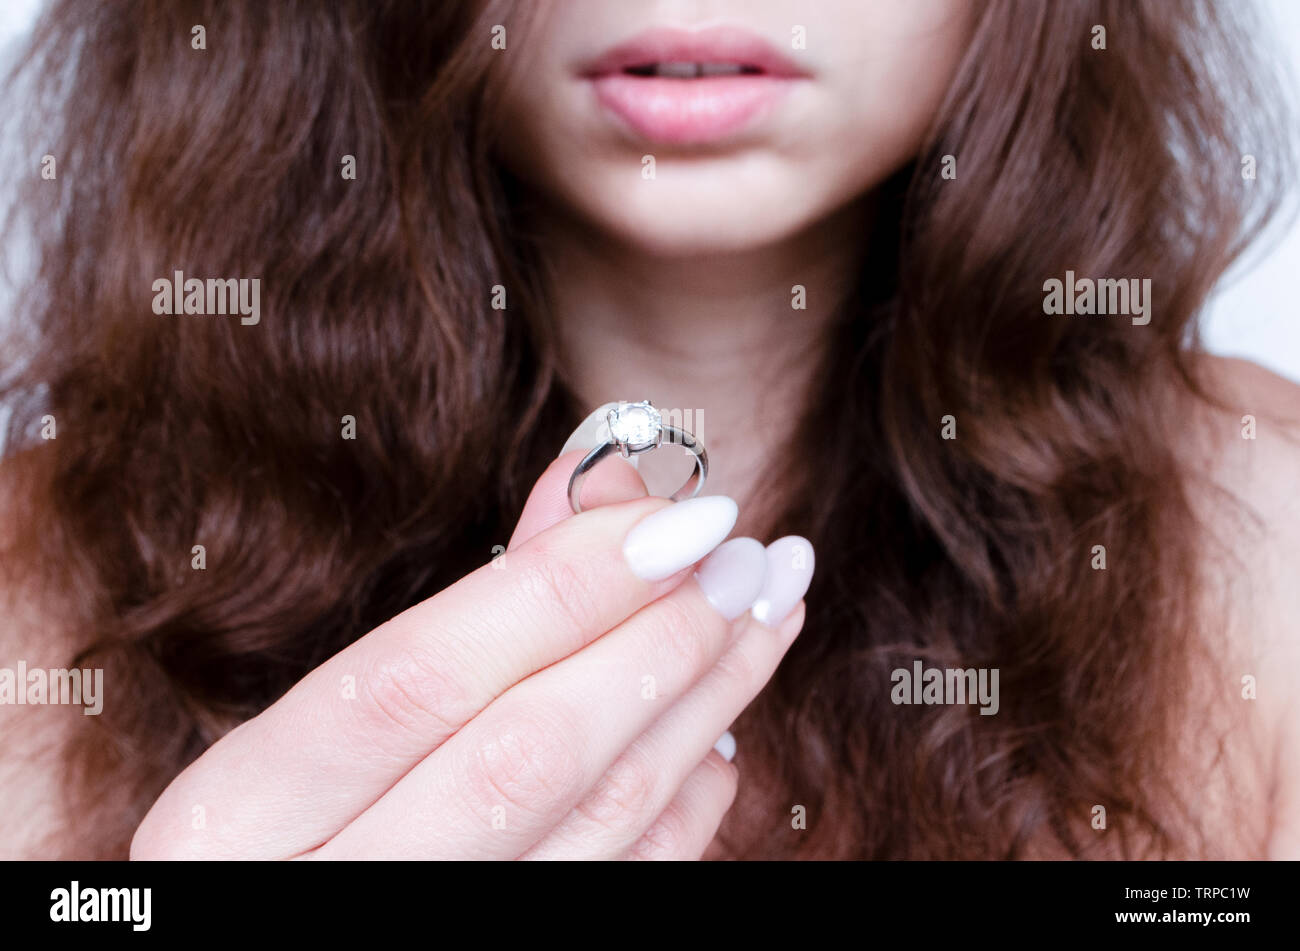 young beautiful woman holding engagement ring with a big diamond Stock Photo